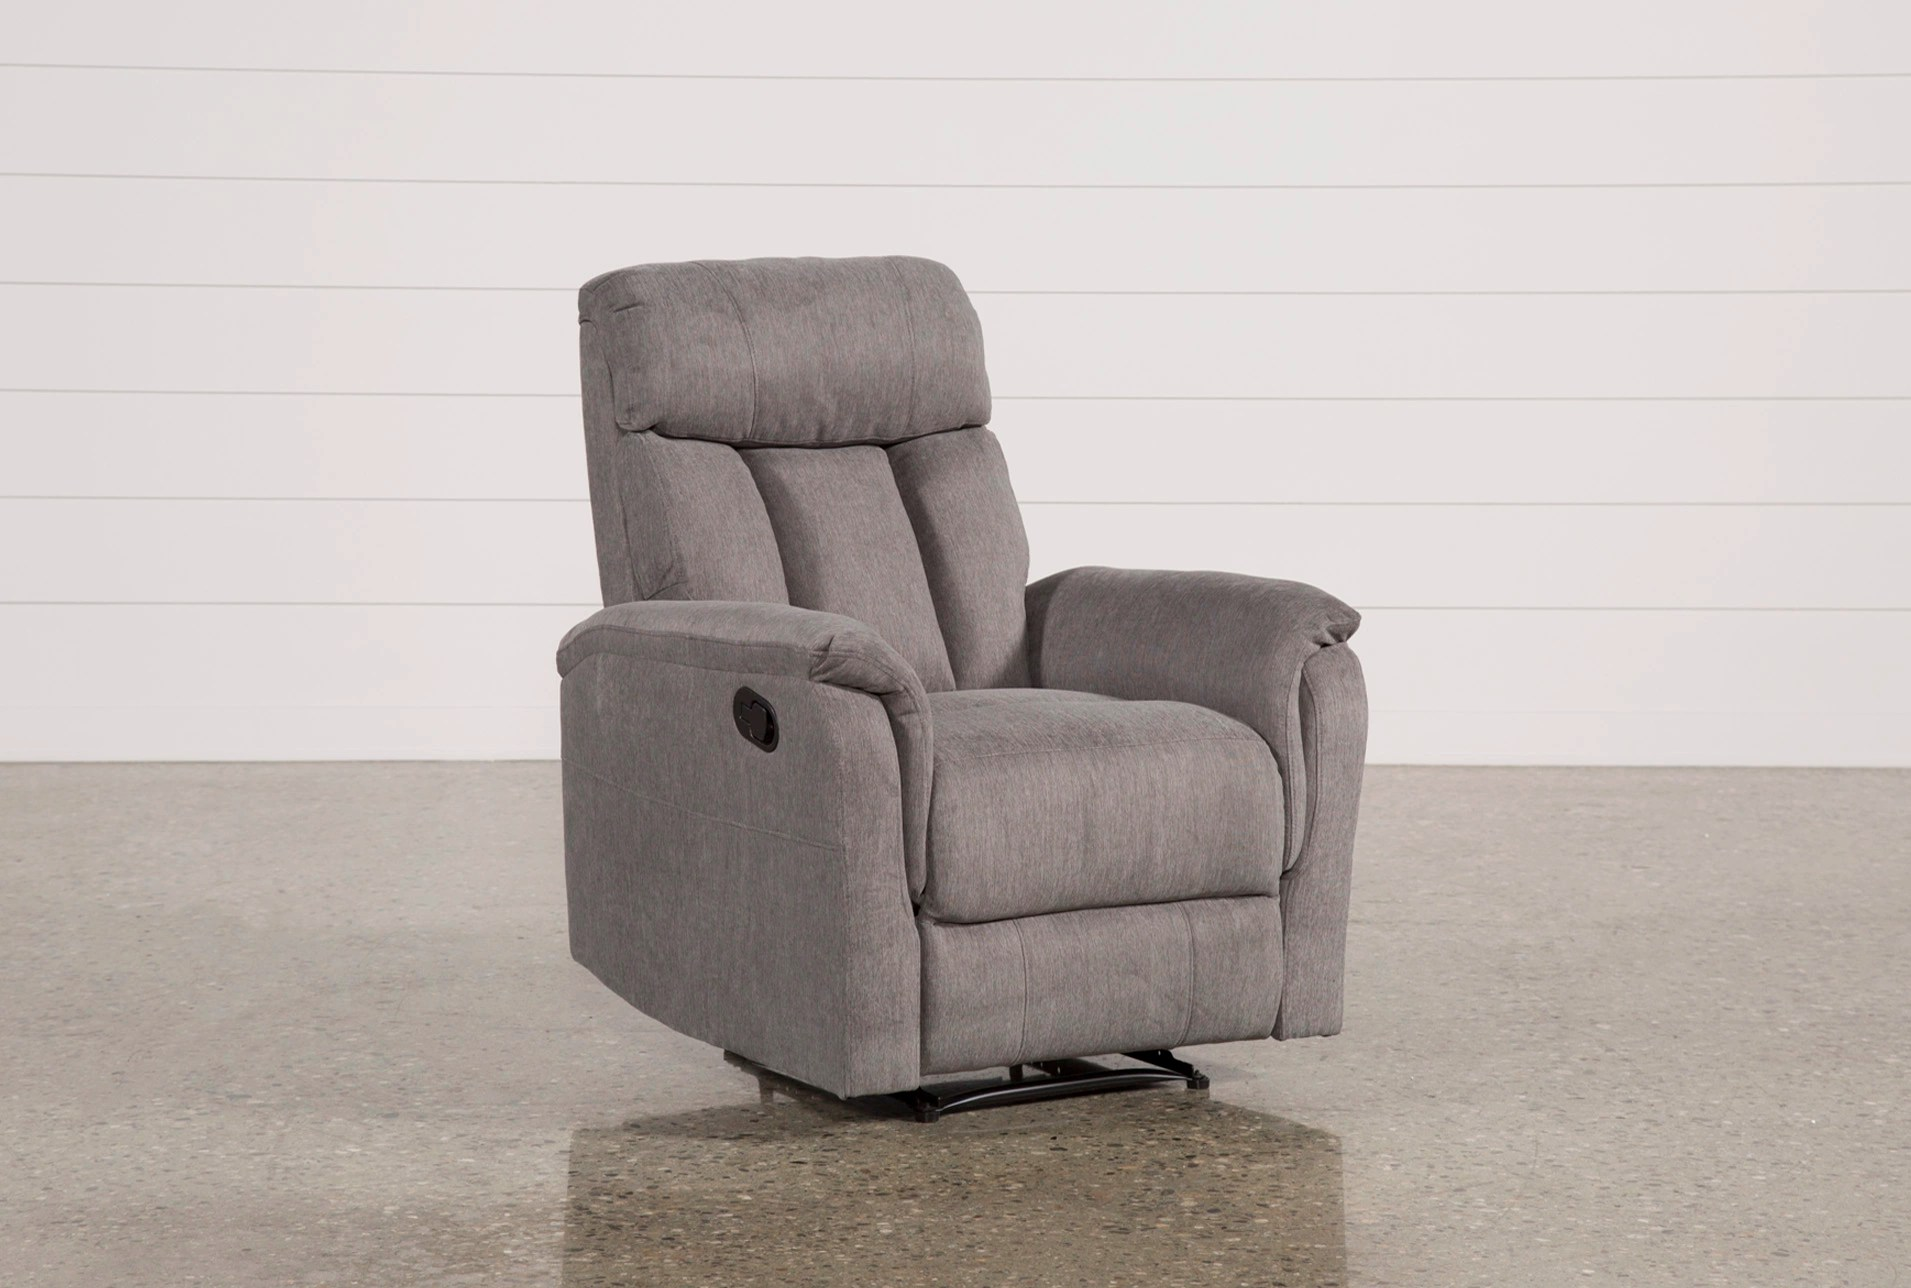 Modern Recliner Chair Recliner Chairs For Your Home Office Living Spaces